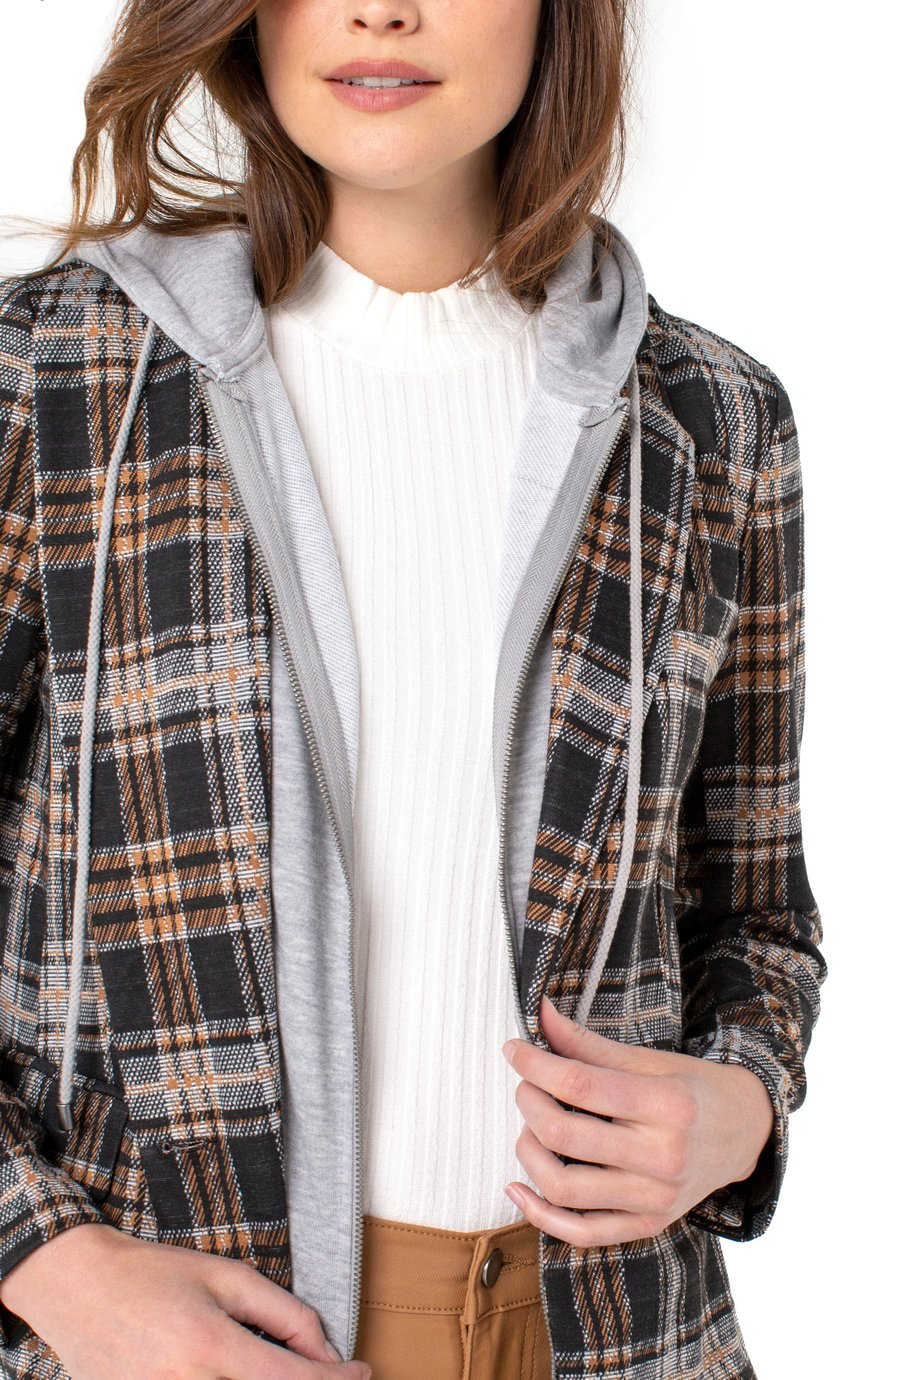 Liverpool LM1599CM49 Hooded Plaid Blazer - Grey Rust Black